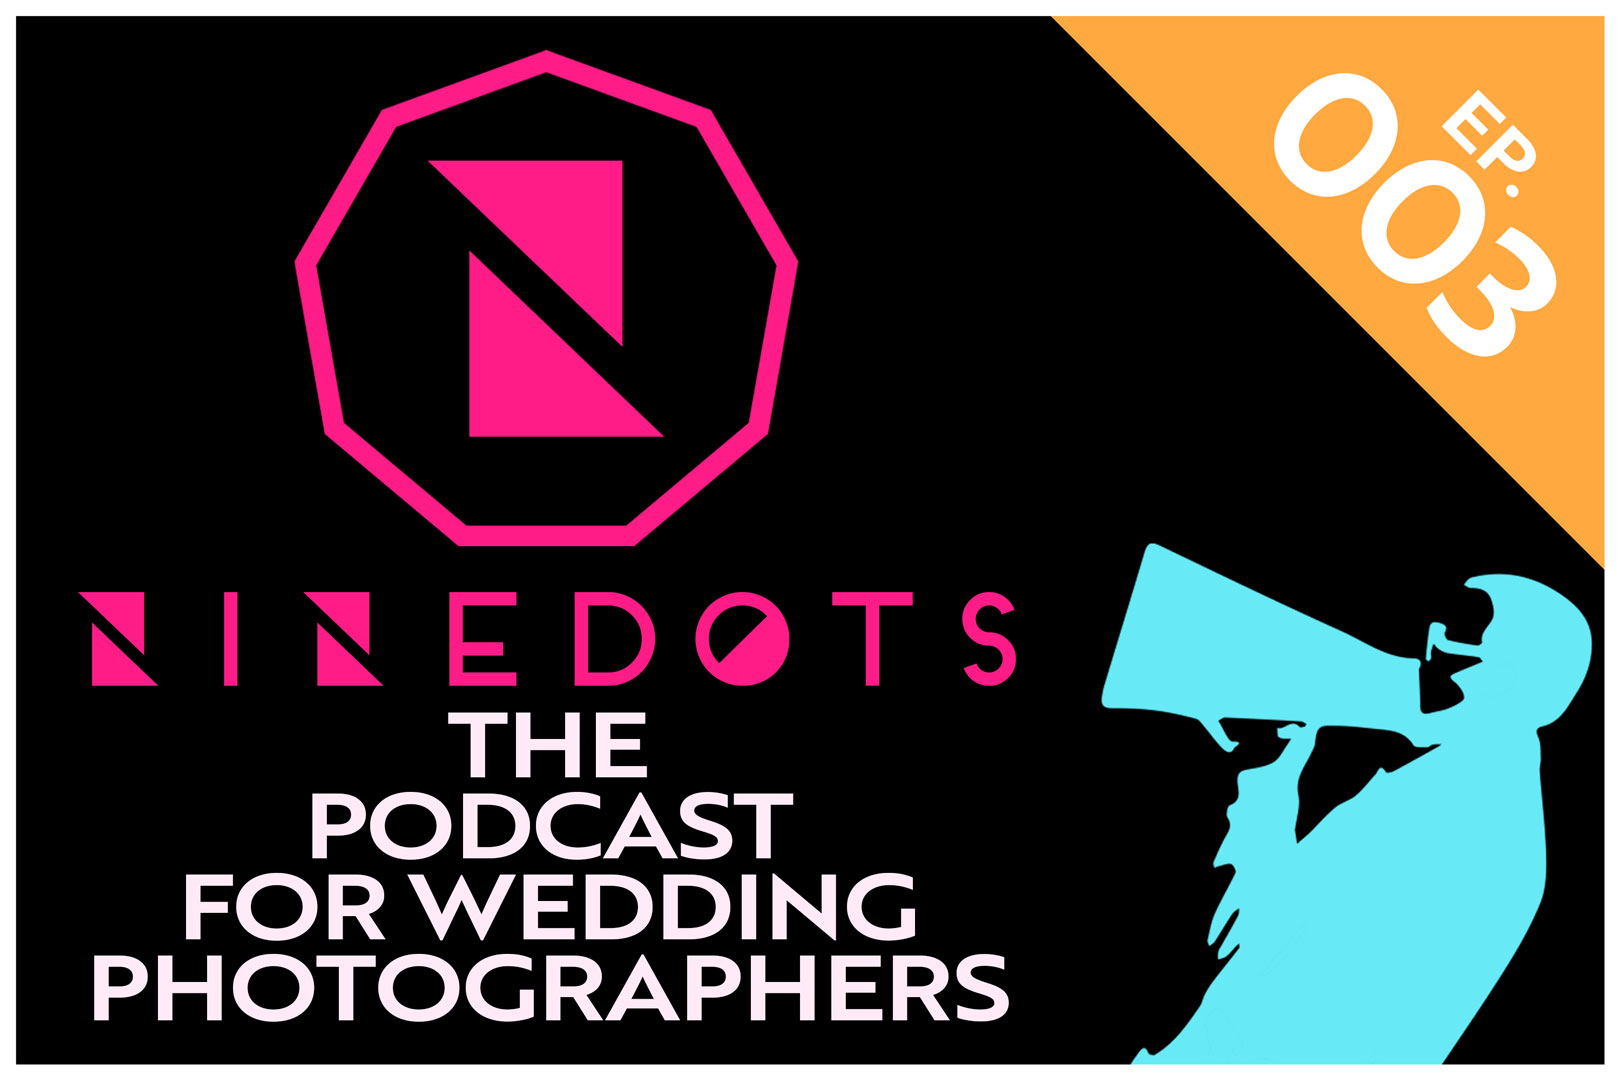 Wedding Photography Podcast - NineDots Dotcast Episode 3